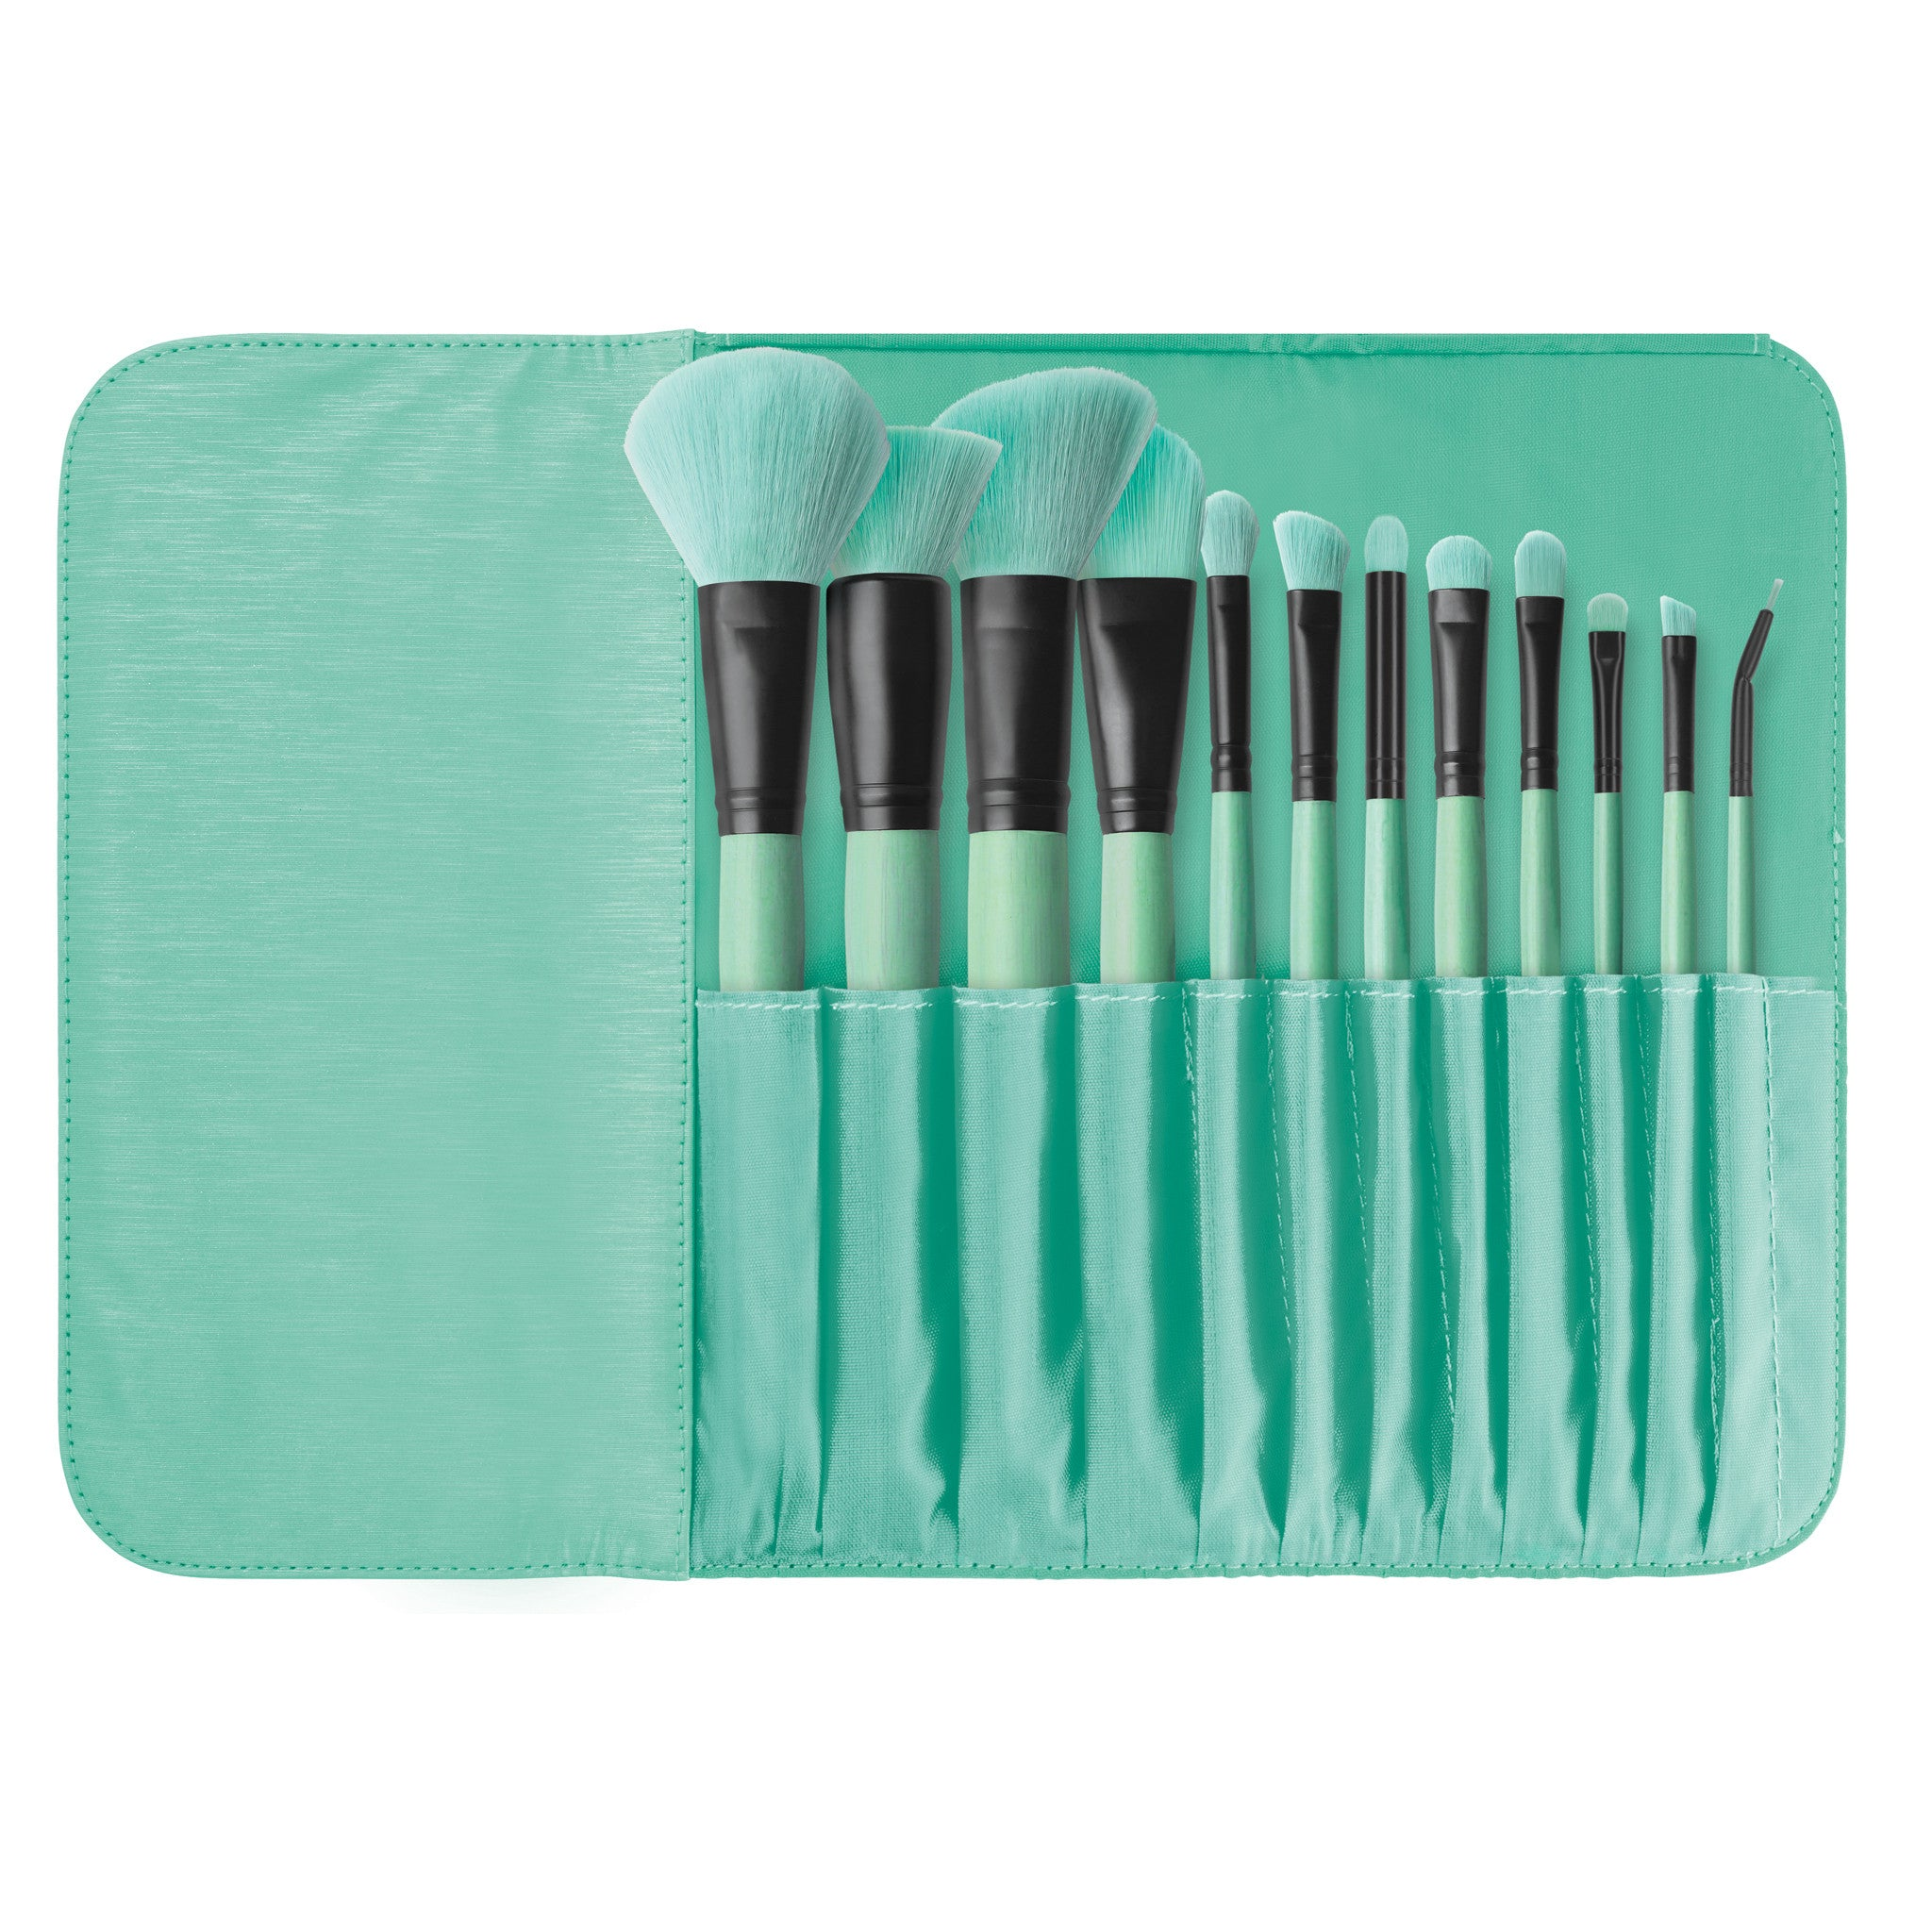 Brush Affair Collection 12 Brush Set in Minty Green